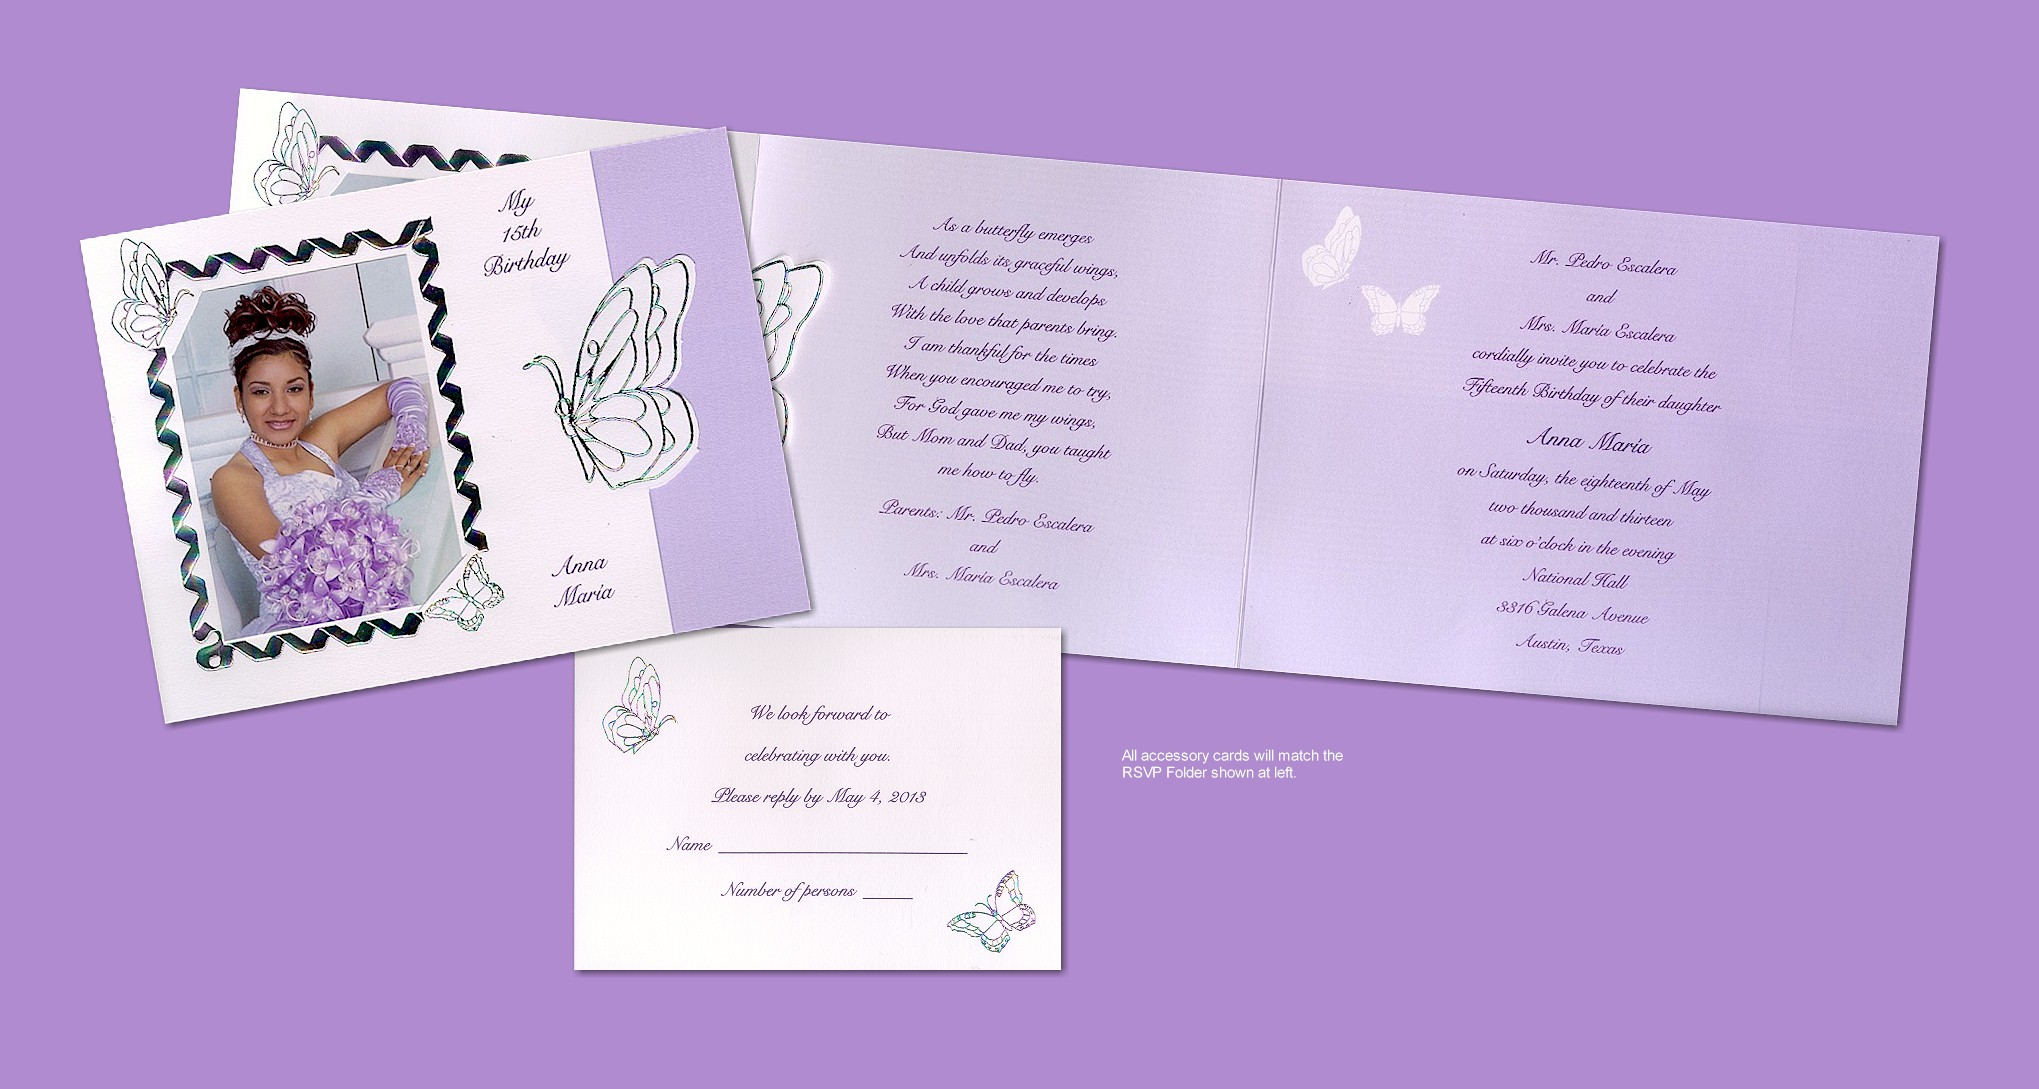 Invitations For Quinceaneras In Spanish with luxury invitations ideas